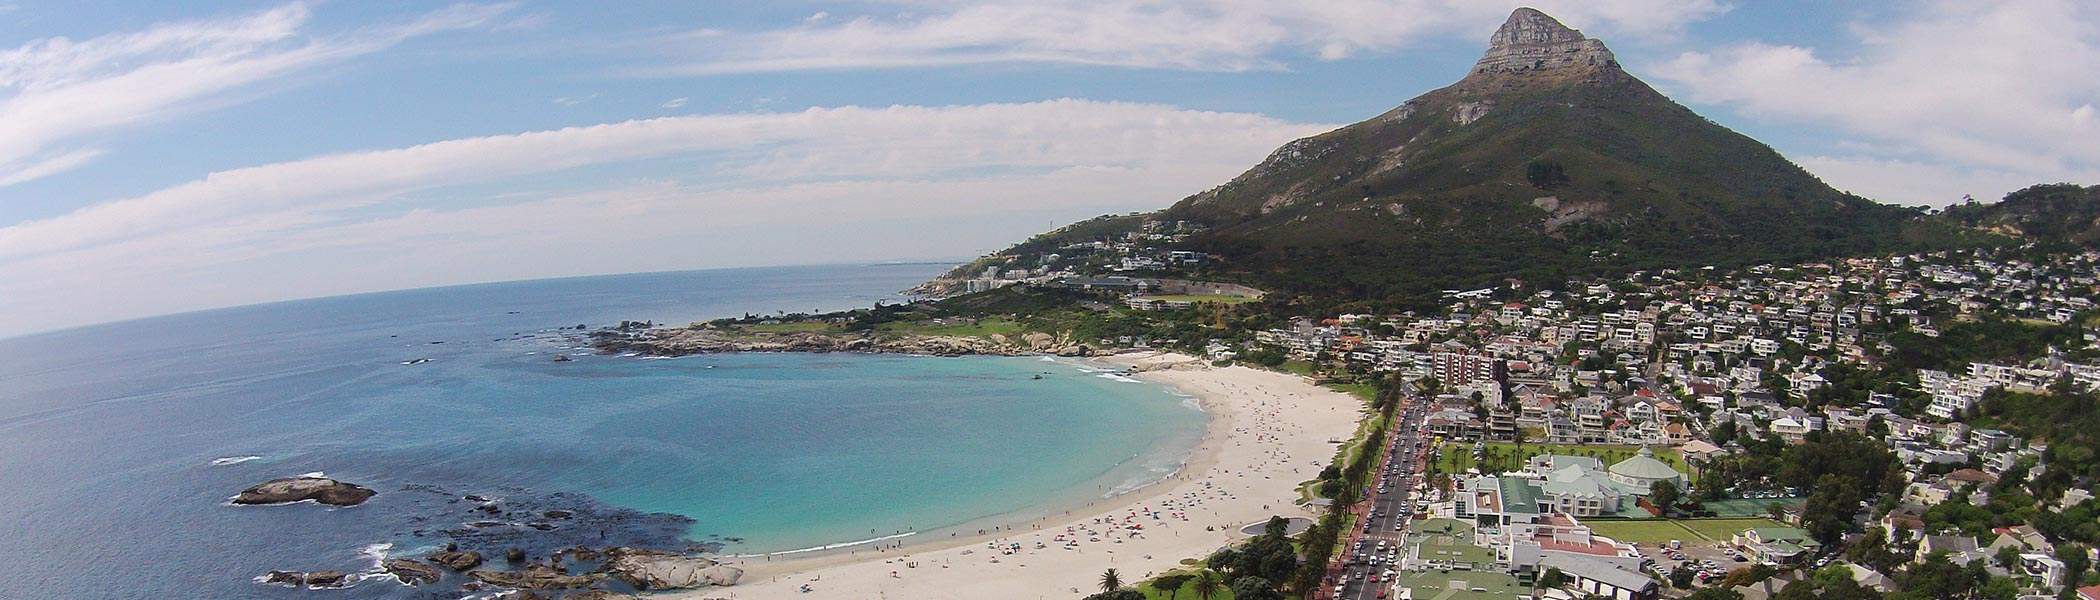 Pet Places - Camps Bay Aerial